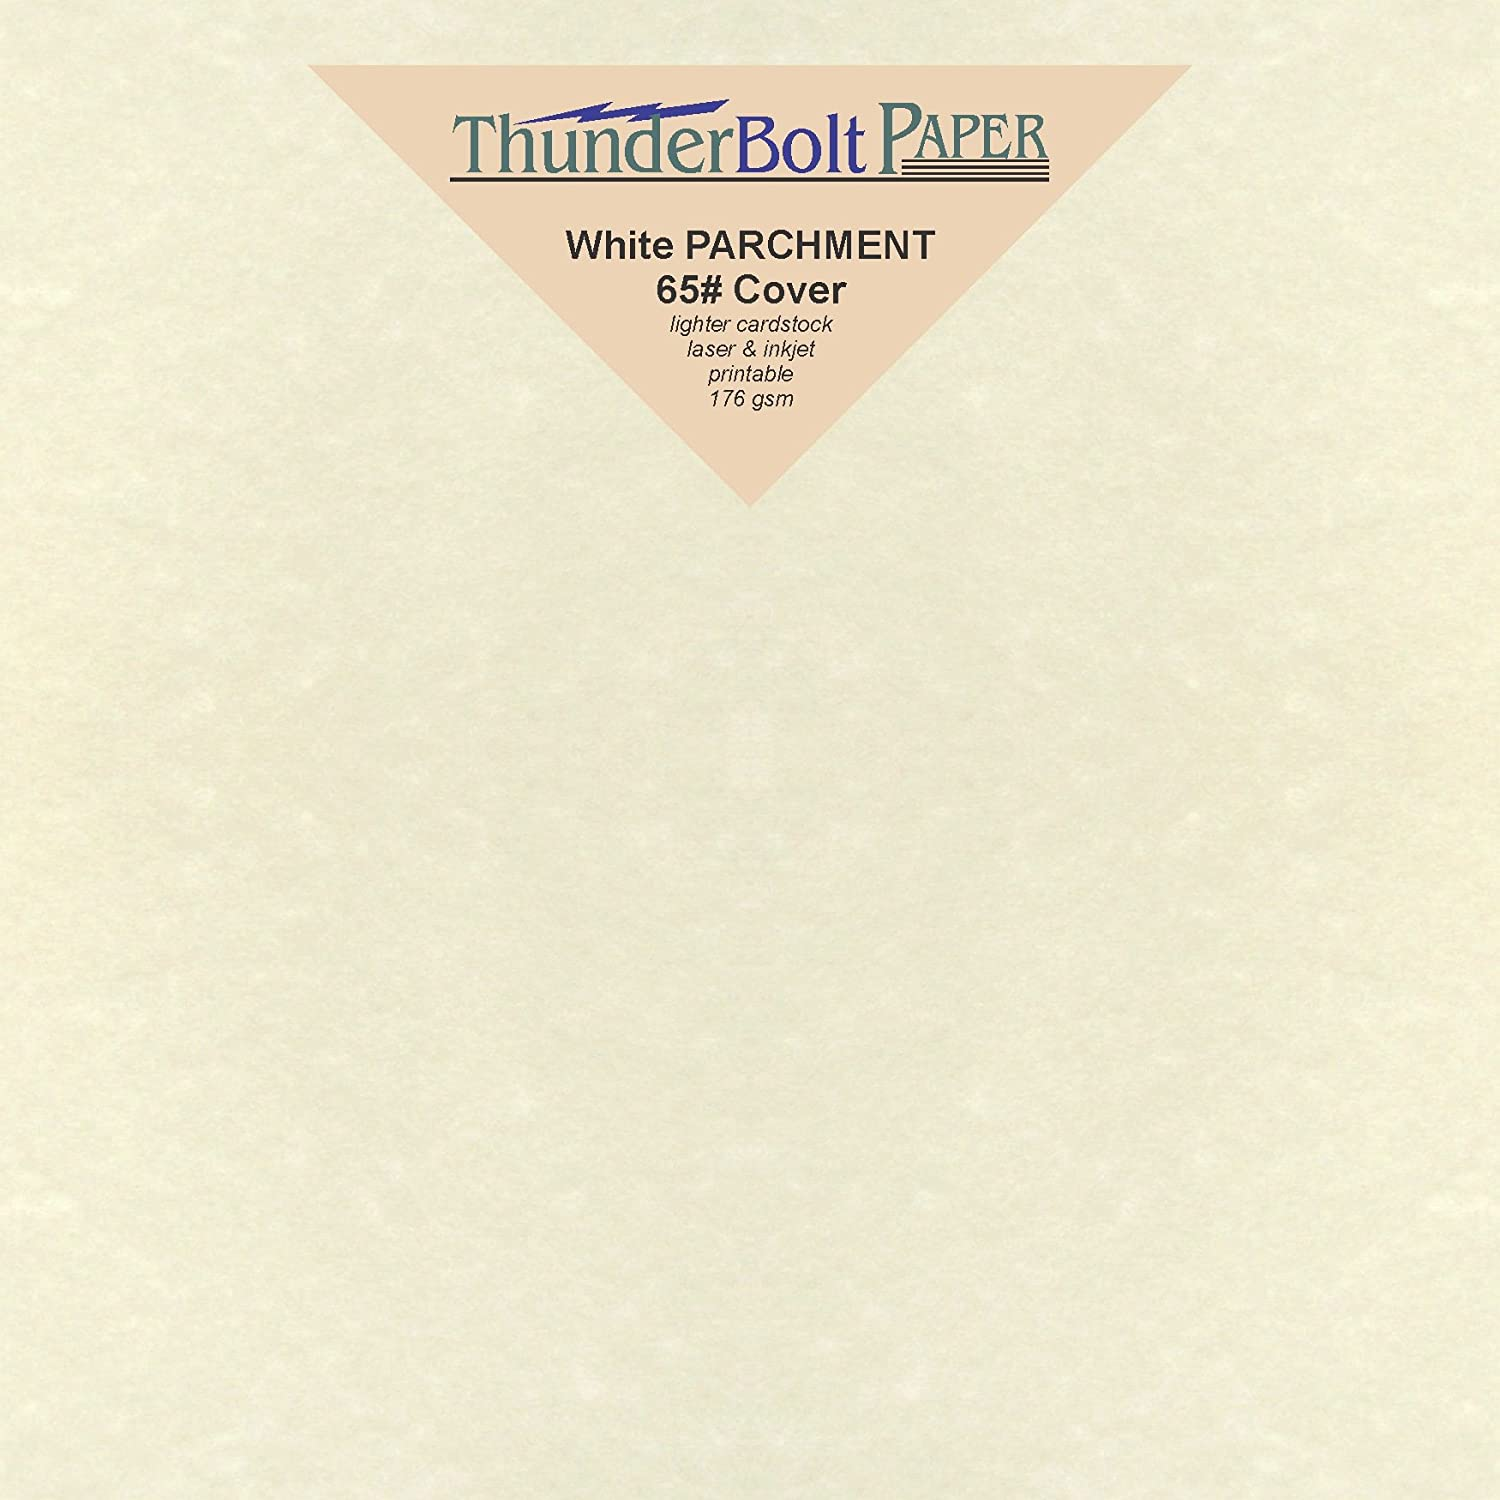 150 White Parchment 65lb Cover Weight Paper - 6 X 6 (6X6 Inches) Square Scrapbook Album Size - Printable Cardstock Colored Sheets Old Parchment Semblance TBP